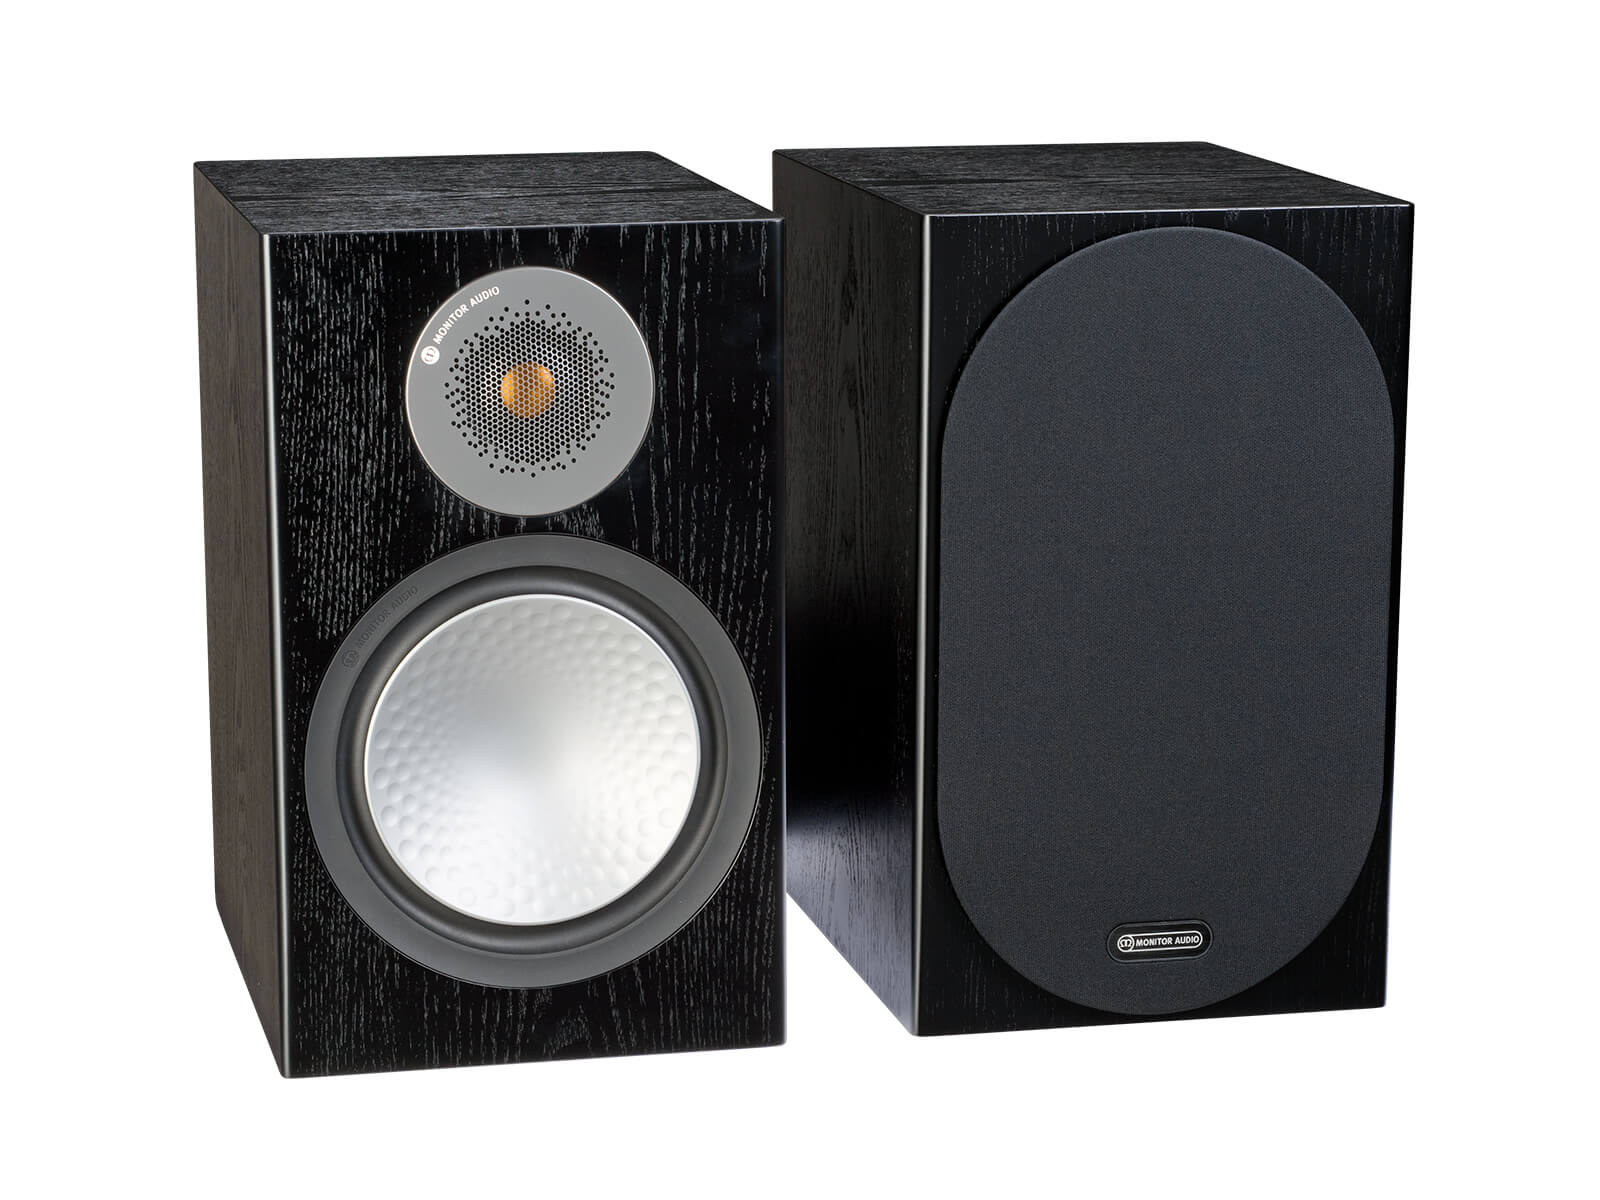 Silver 100 Bookshelf Speakers With And Without Grille In A Black Oak Finish